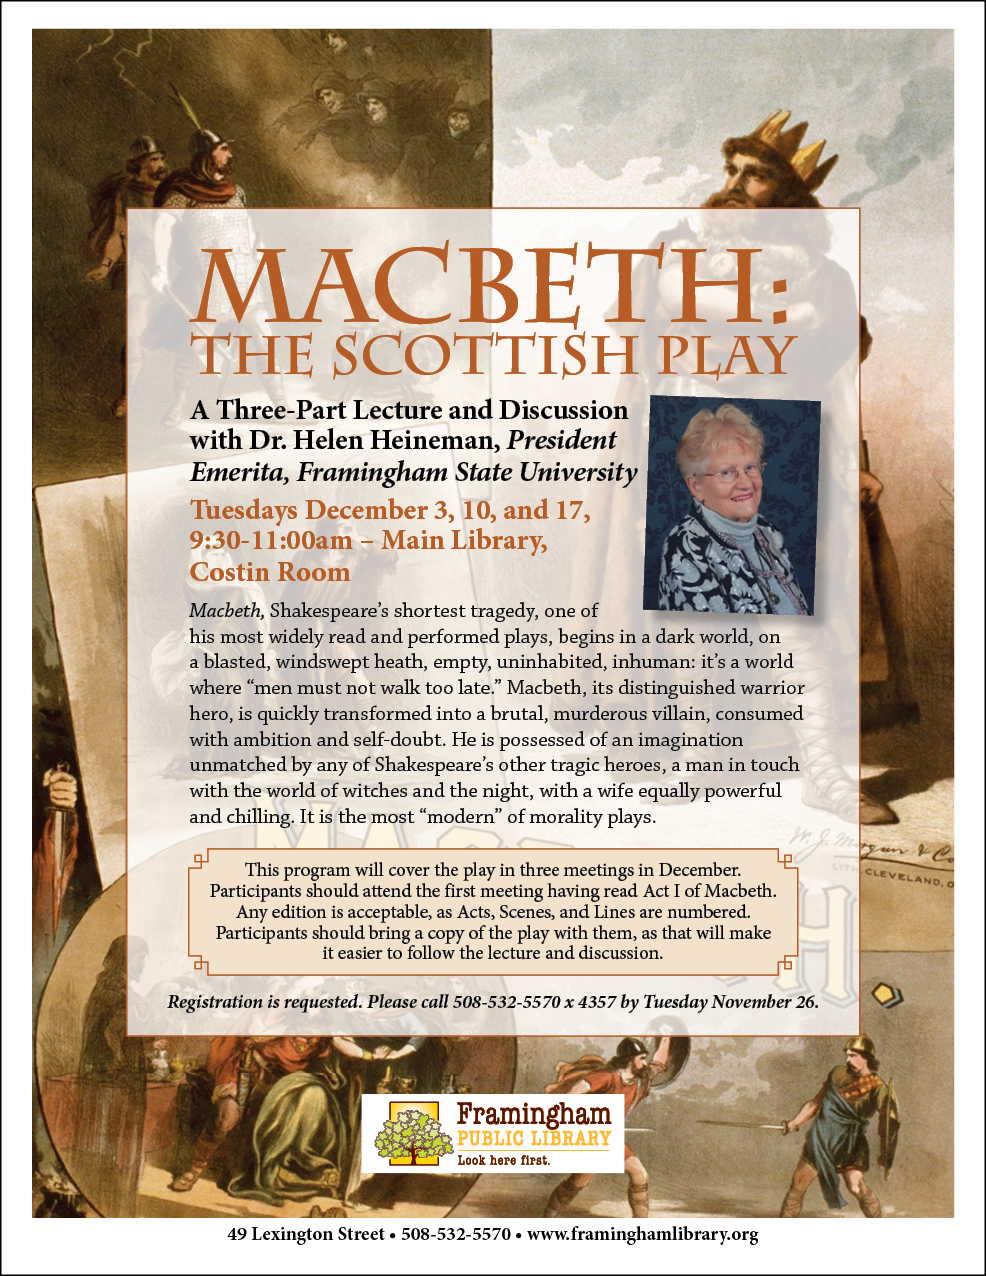 Macbeth: the Scottish Play: A Three-Part Lecture and Discussion with Dr. Helen Heineman thumbnail Photo